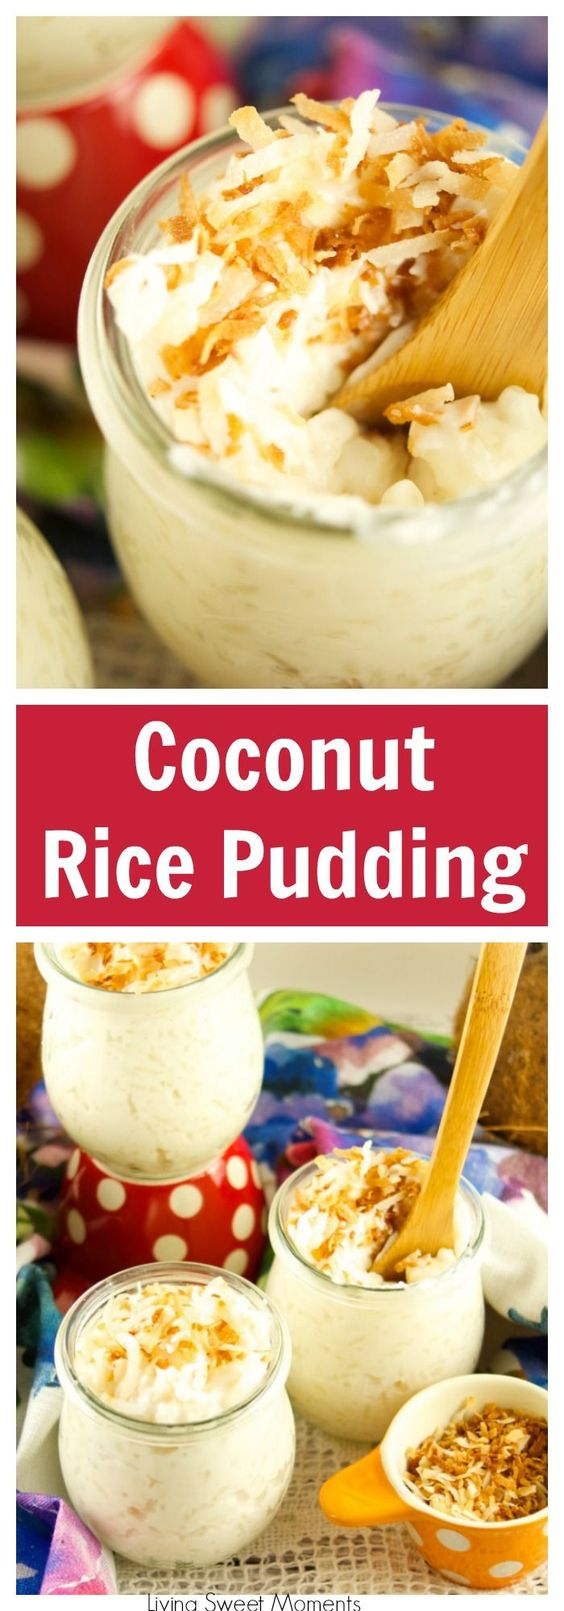 For a sweet dessert rice recipe, try this coconut rice pudding. Easy to make.